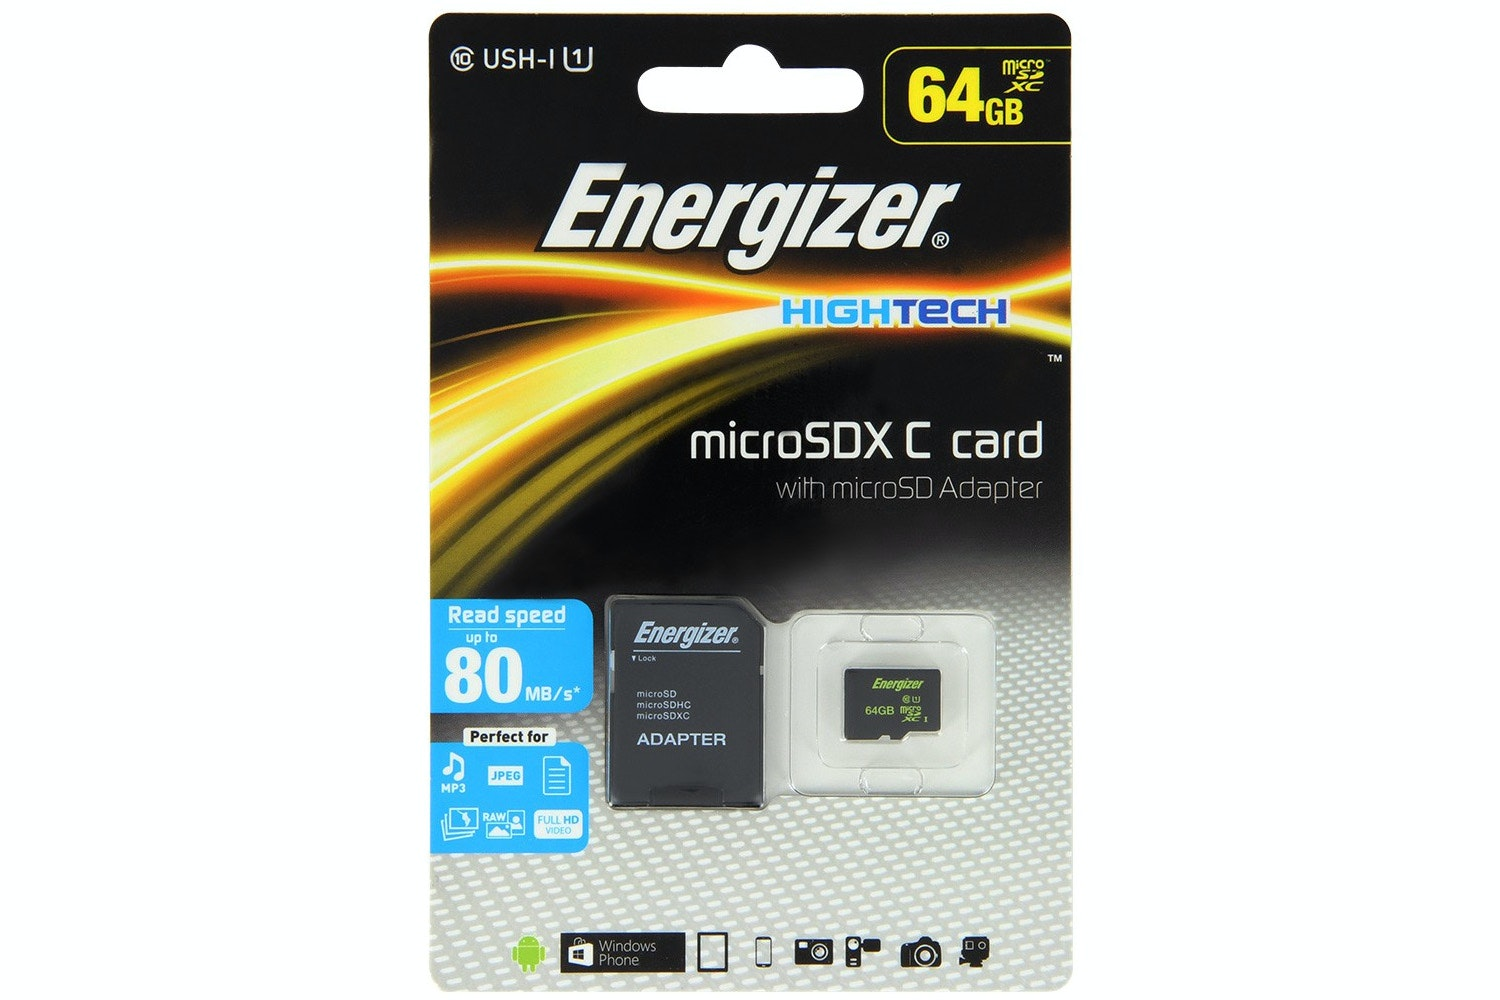 Energizer Hightech Micro SDHC Card and Micro SD Adapter | 64GB